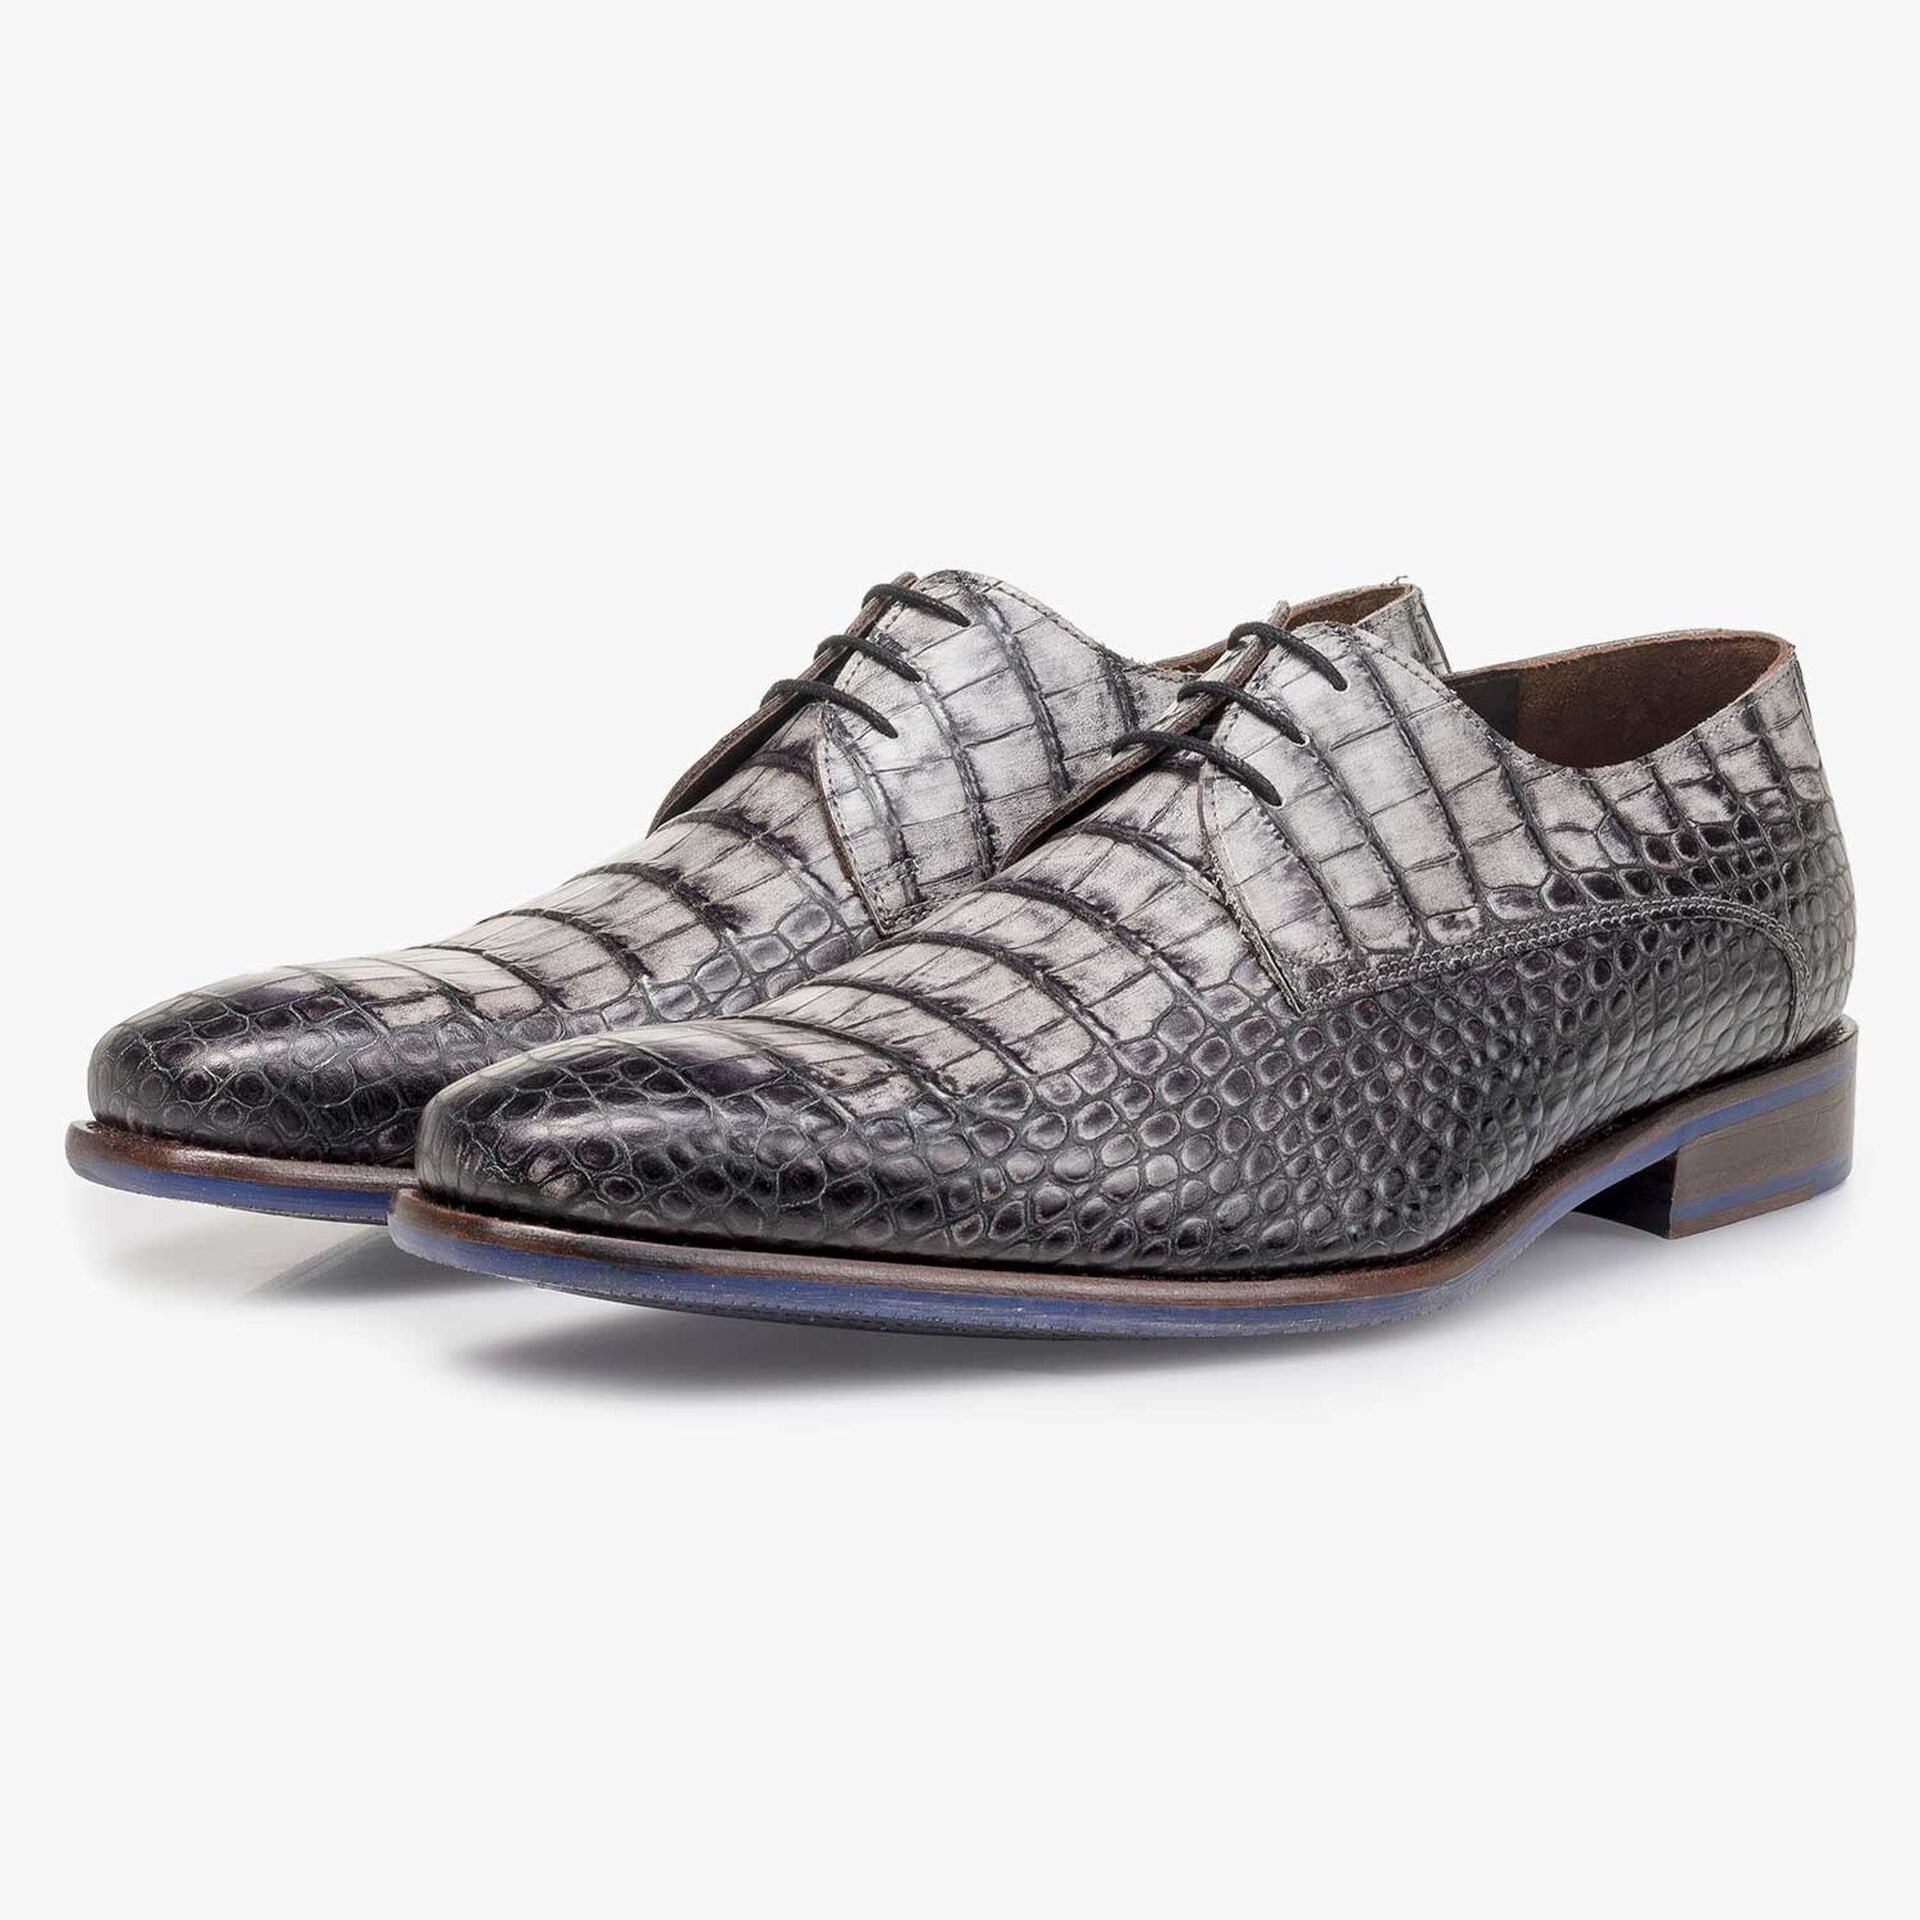 Grey croco print calf leather lace shoe